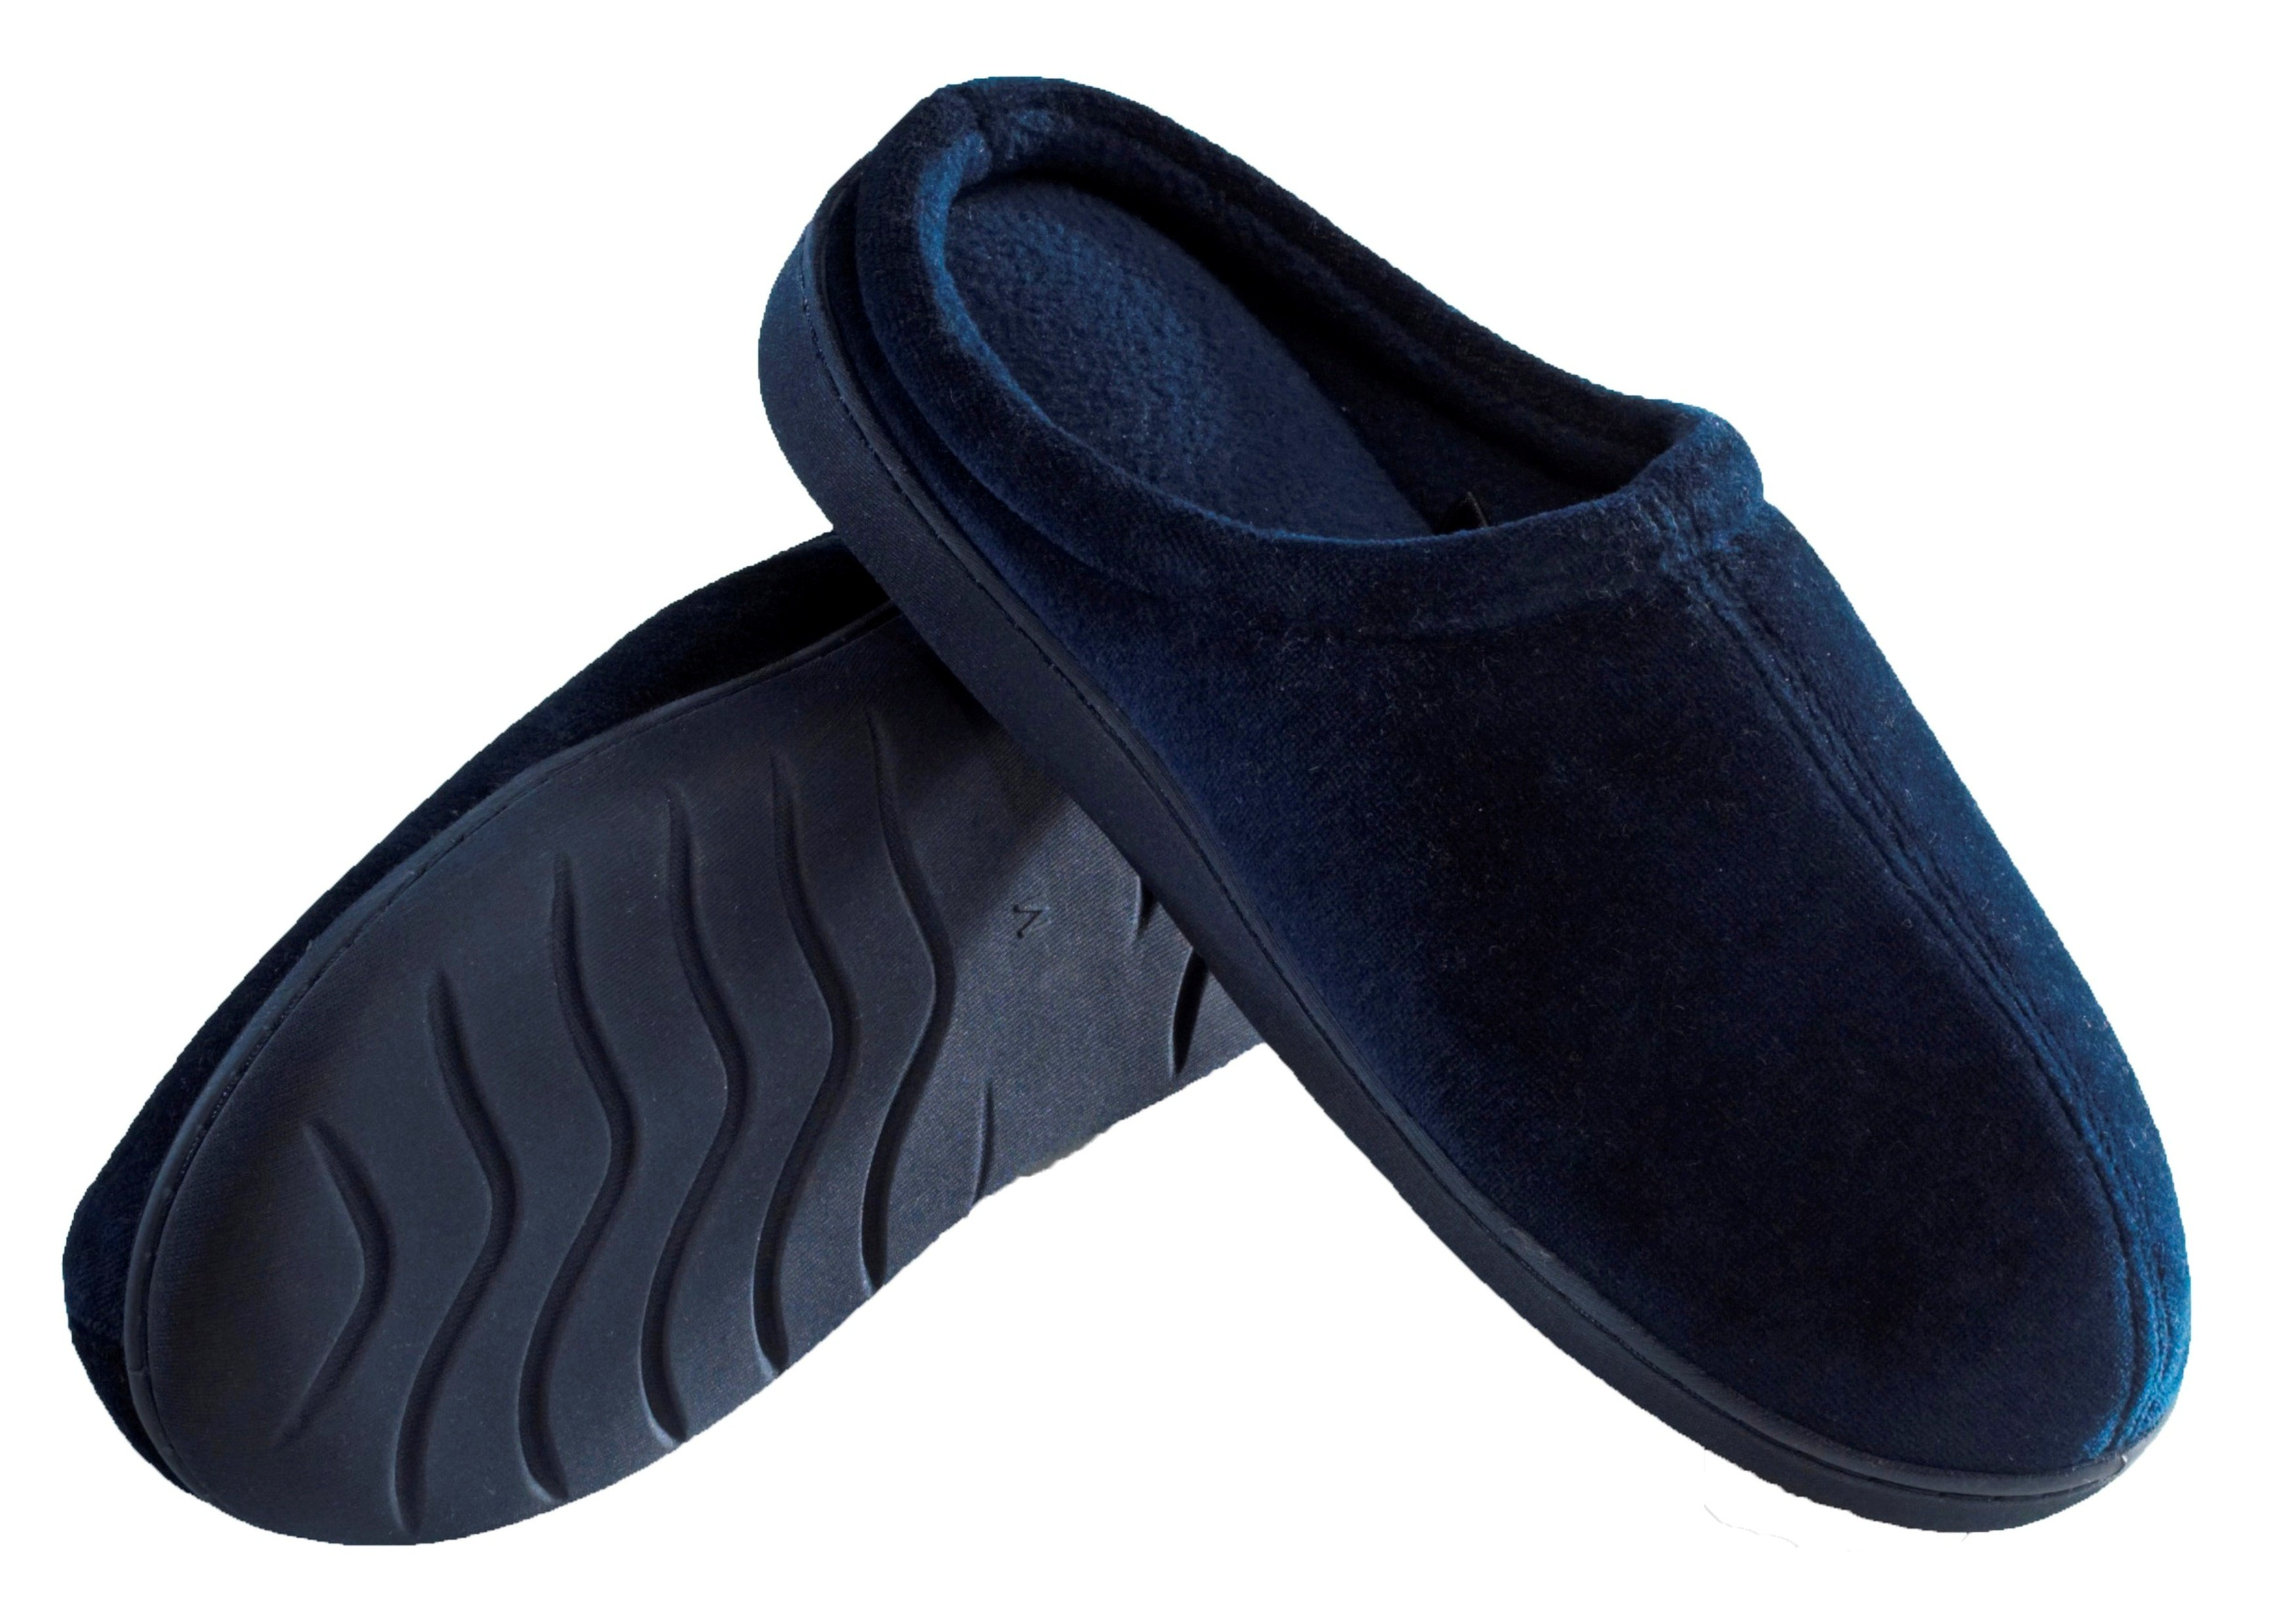 Mens Indoor/Outdoor Slip-On Memory Foam House Slippers X-Large - Durable Non-Marking Ruber Sole - Comfortable Foam Cushioning - Warm And Cozy - Mens Slippers Blue